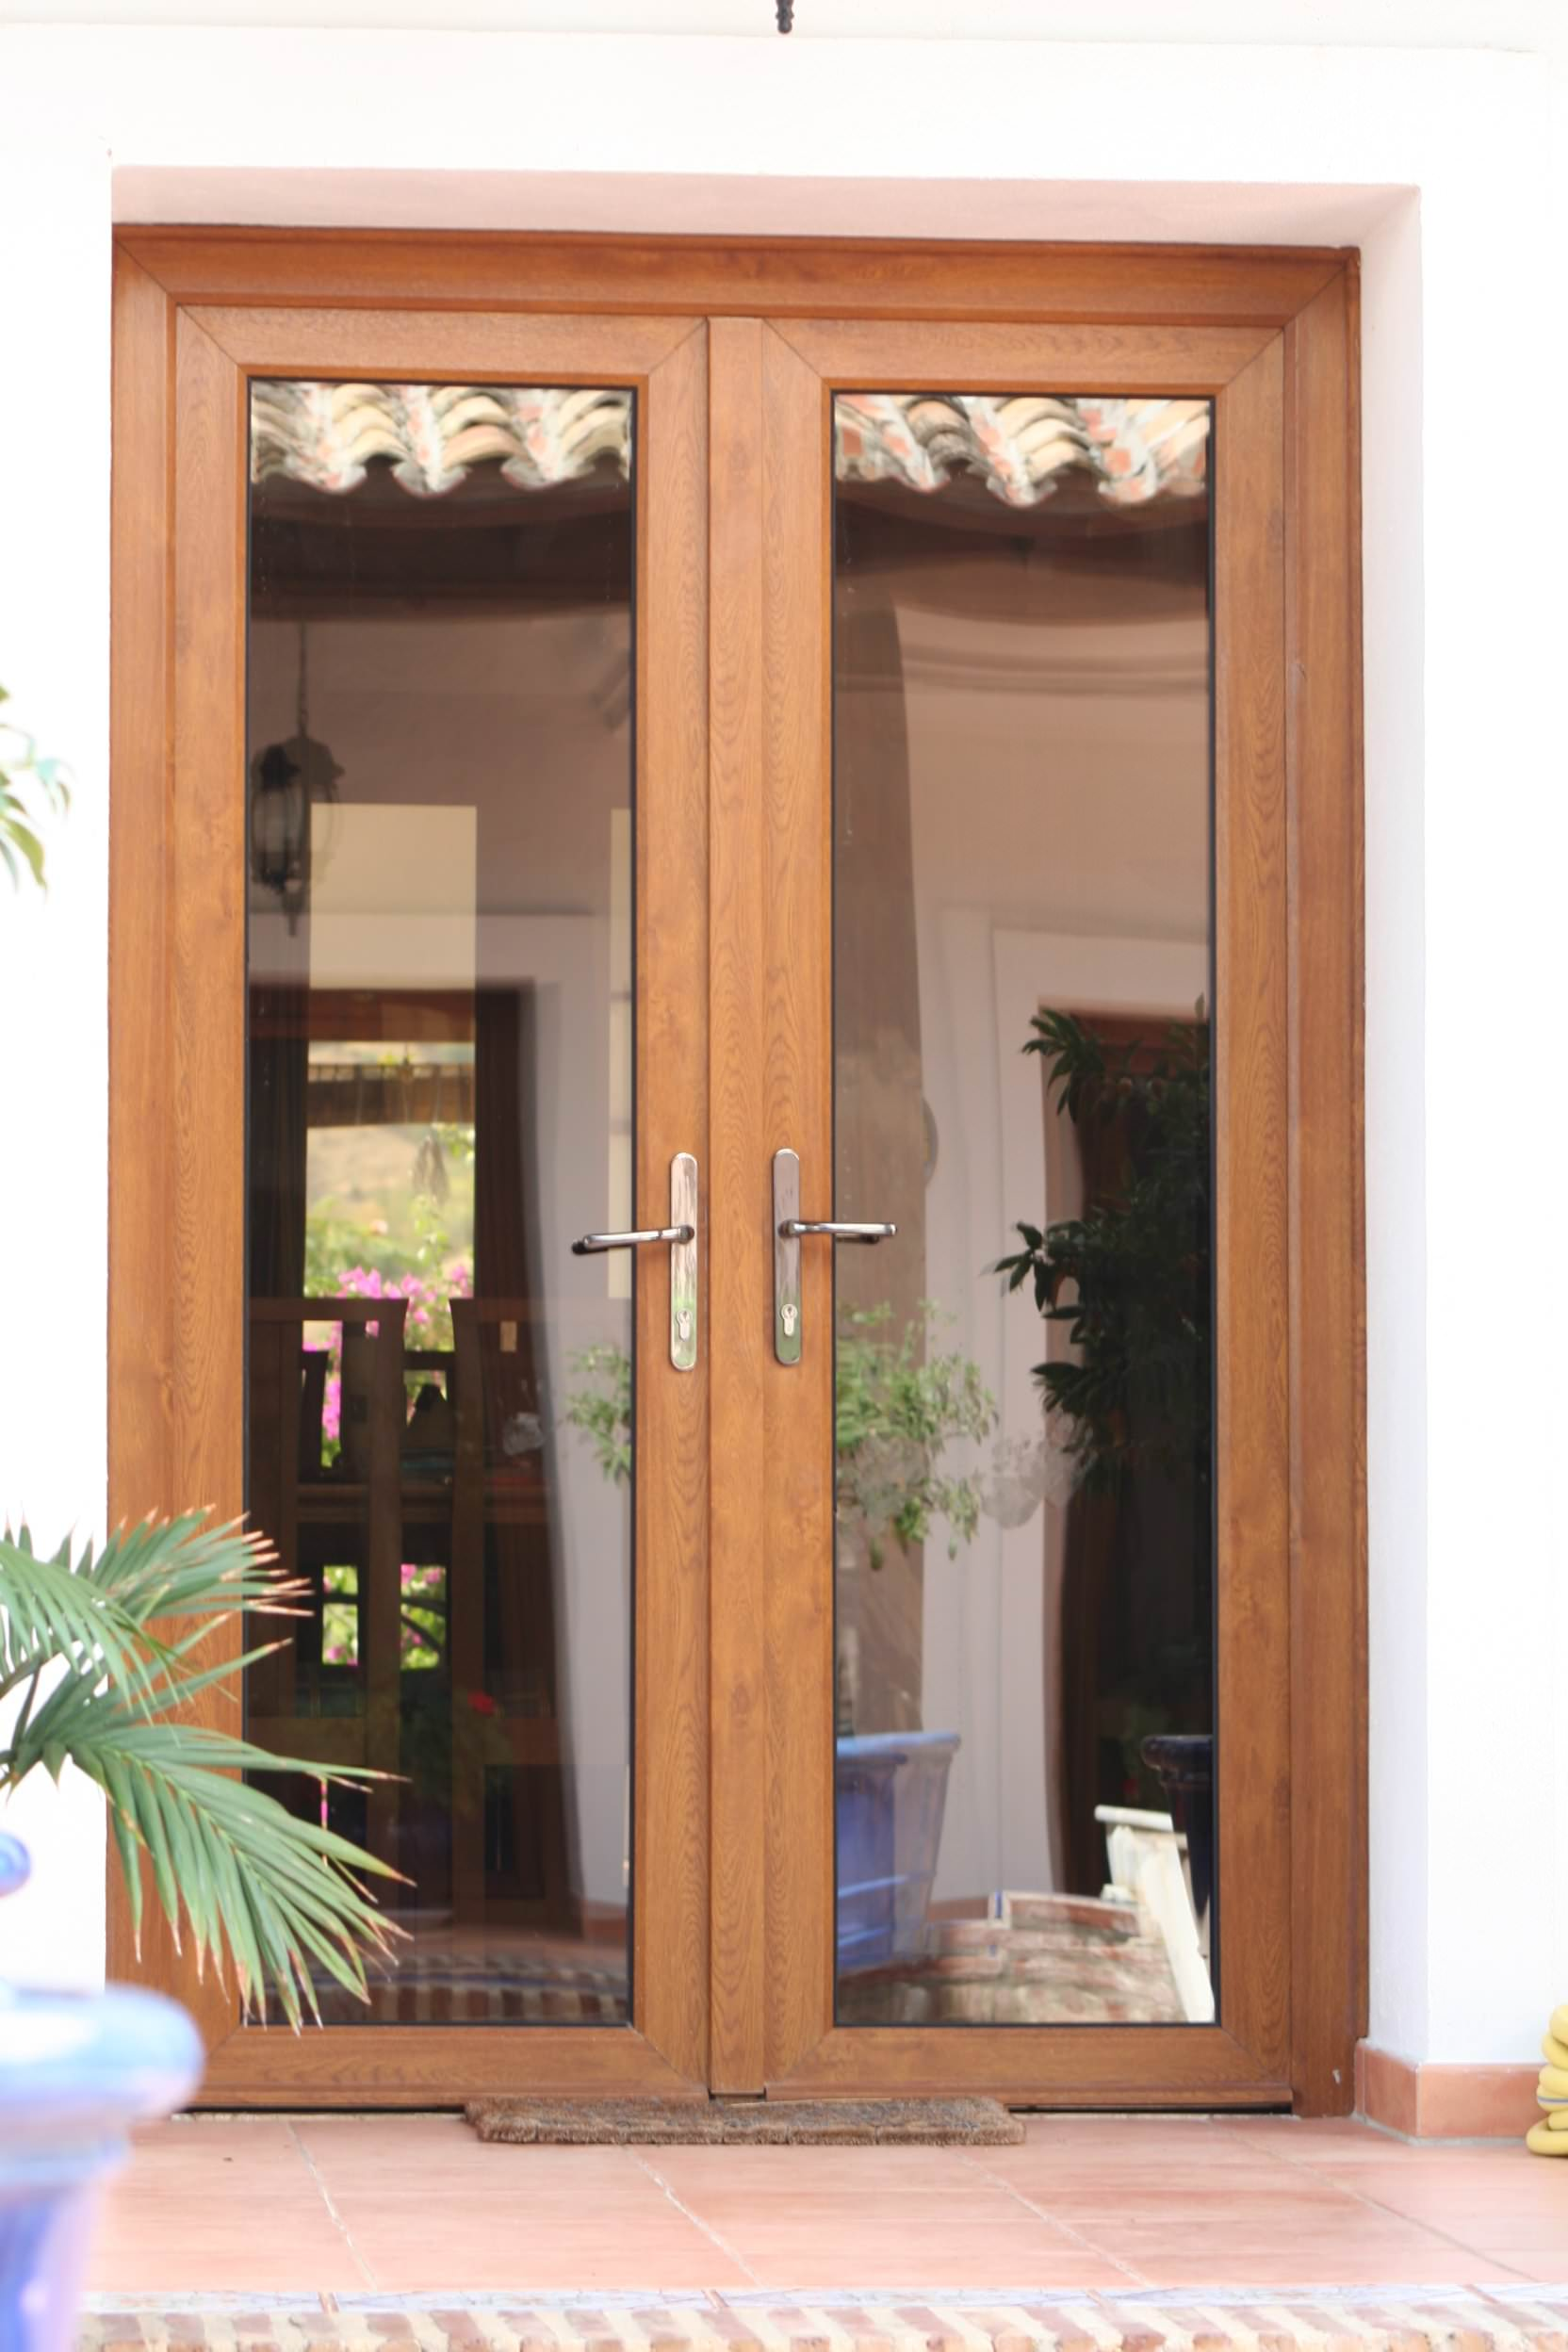 ideas pretty windows doors side design door designs french with curtains